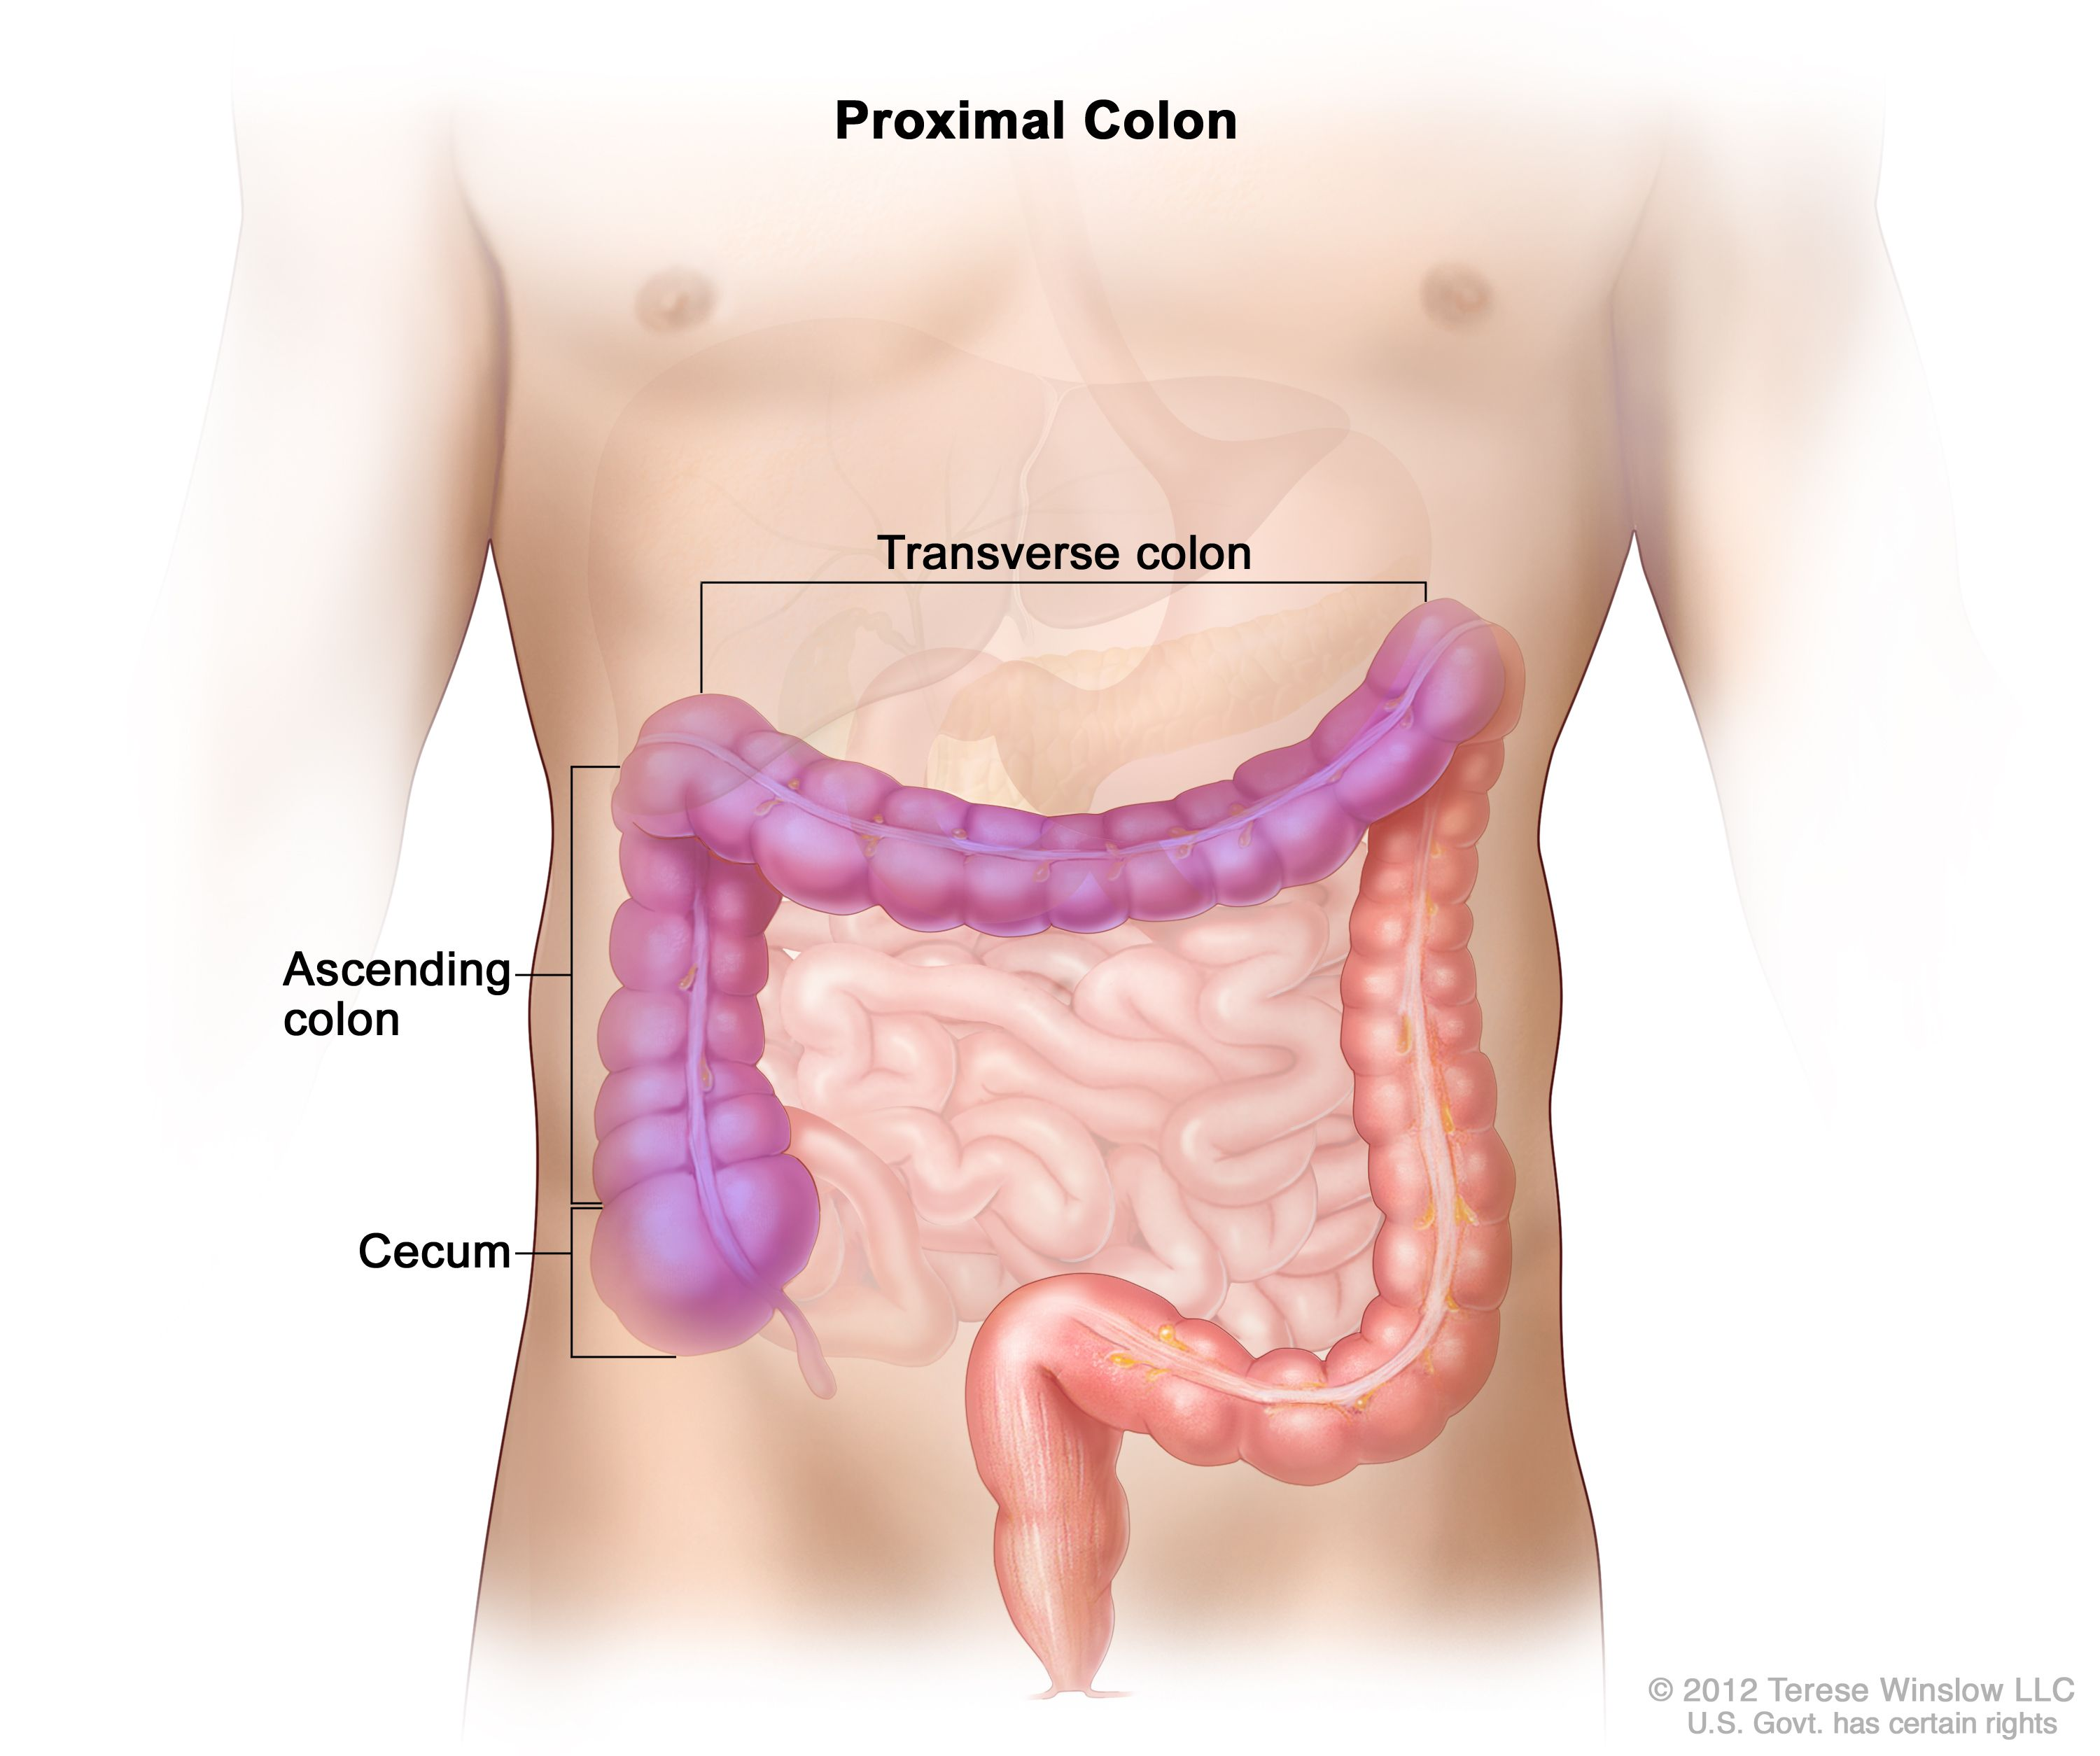 Definition Of Proximal Colon Nci Dictionary Of Cancer Terms National Cancer Institute